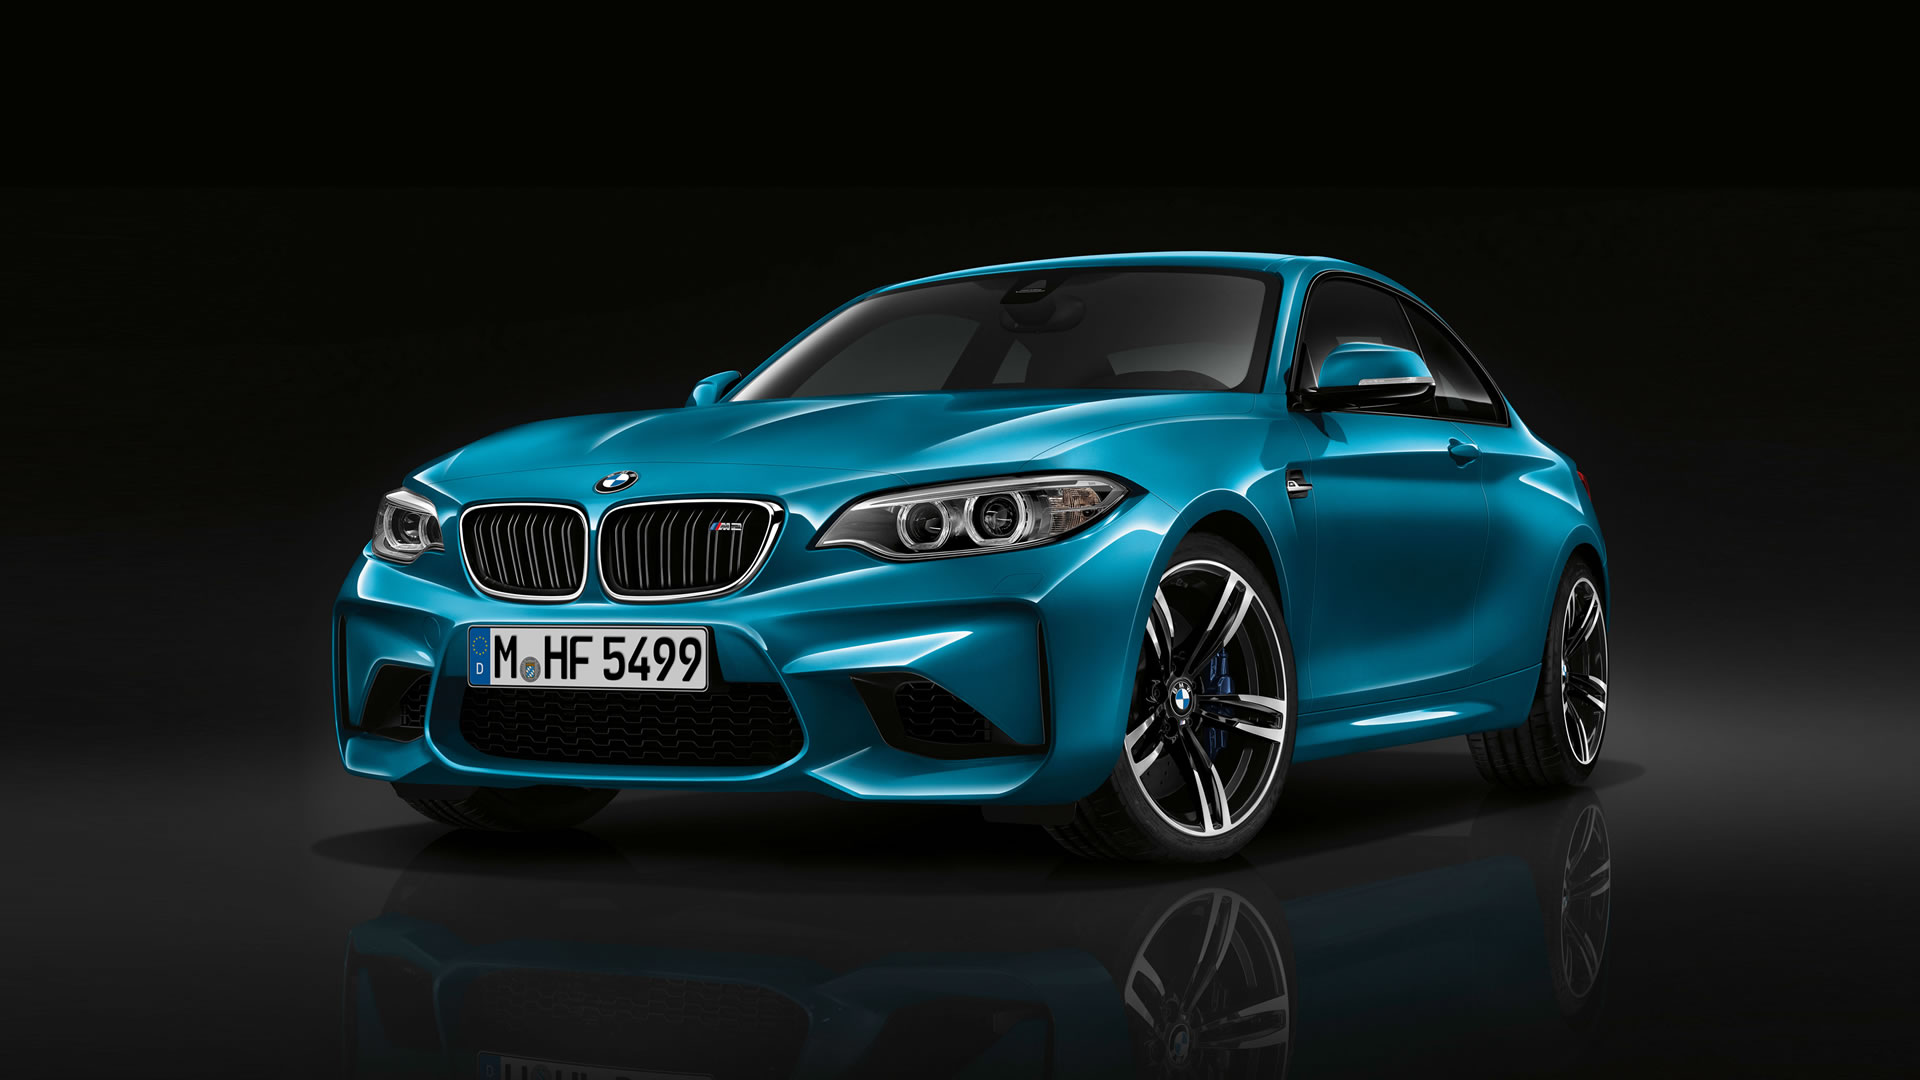 1920x1080 - BMW M2 Coupe Wallpapers 36